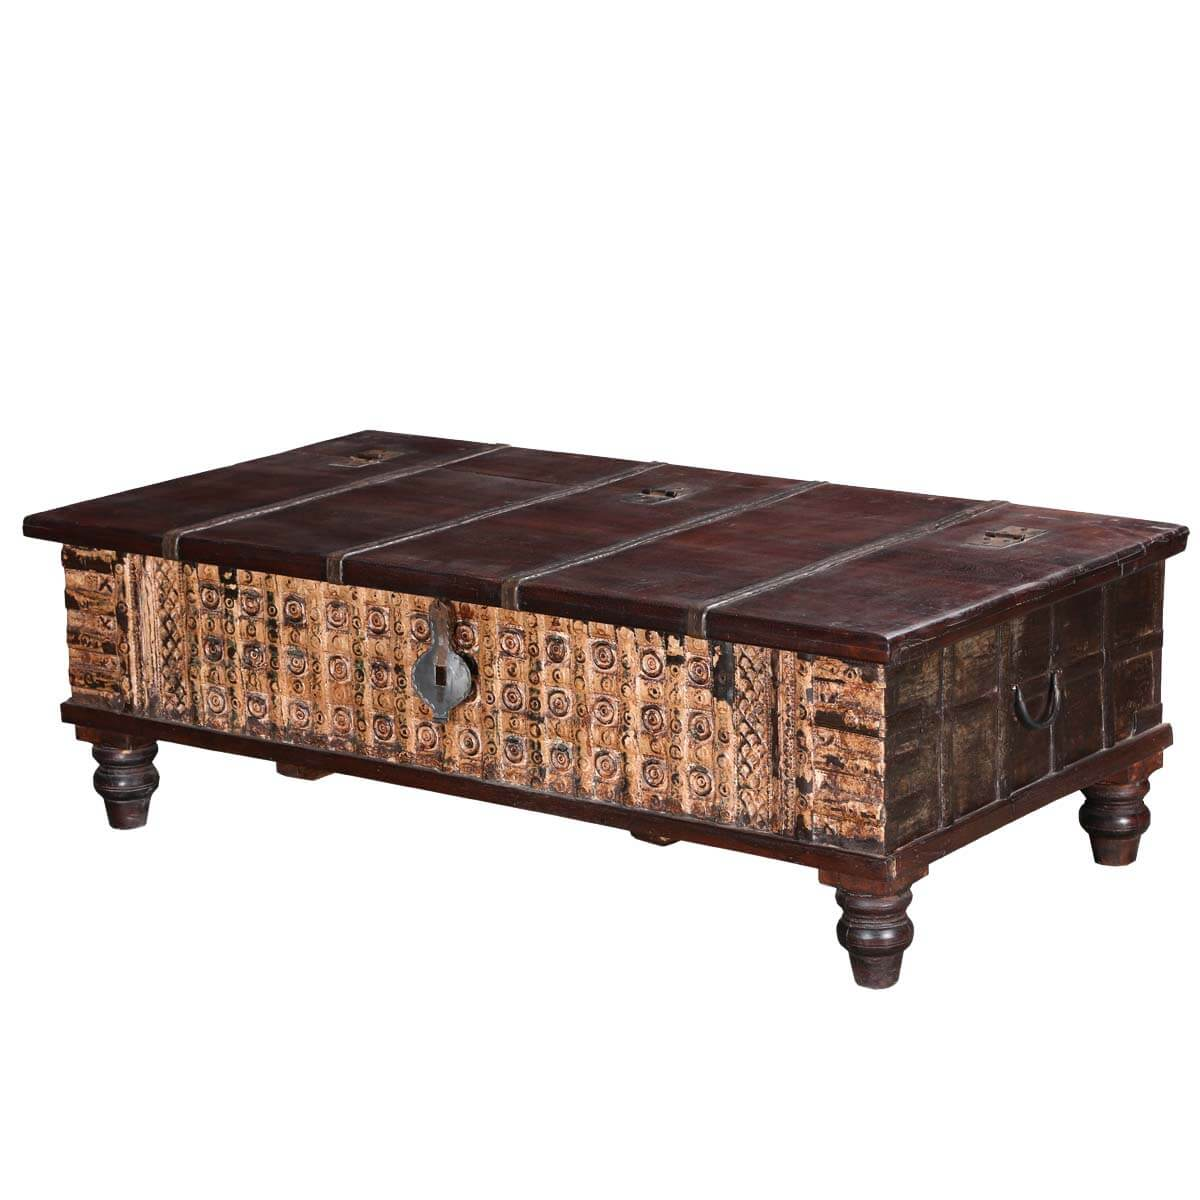 Rustic Heritage Reclaimed Wood Standing Coffee Table Chest